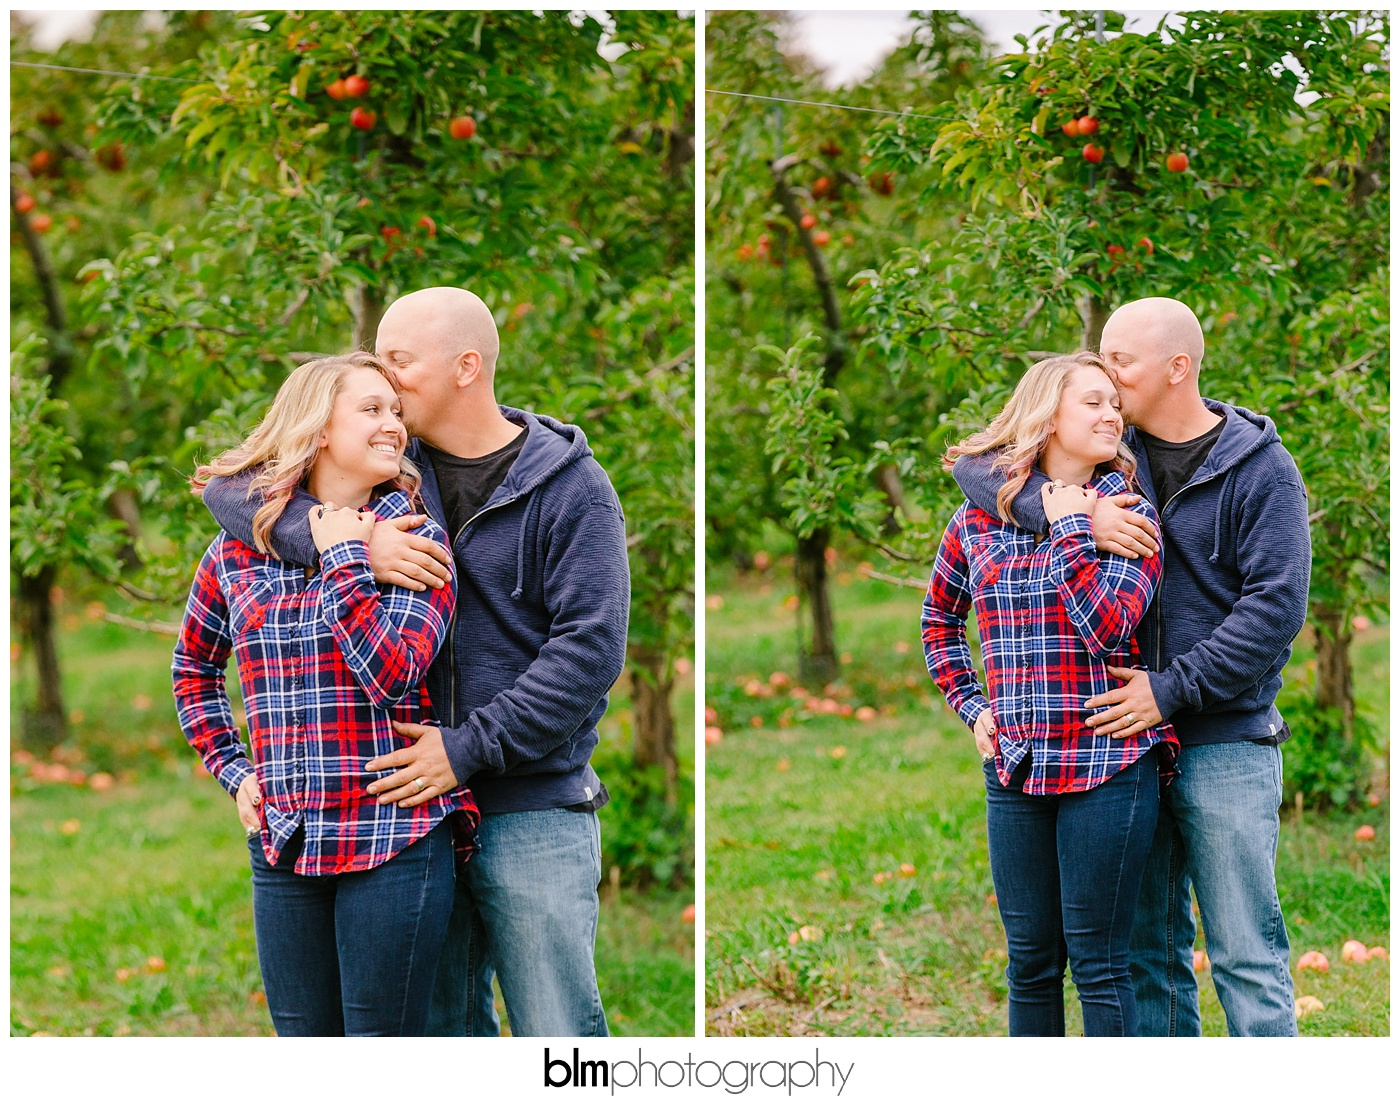 003Kaylynn-Jimmy-Lovebirds-3353.jpg